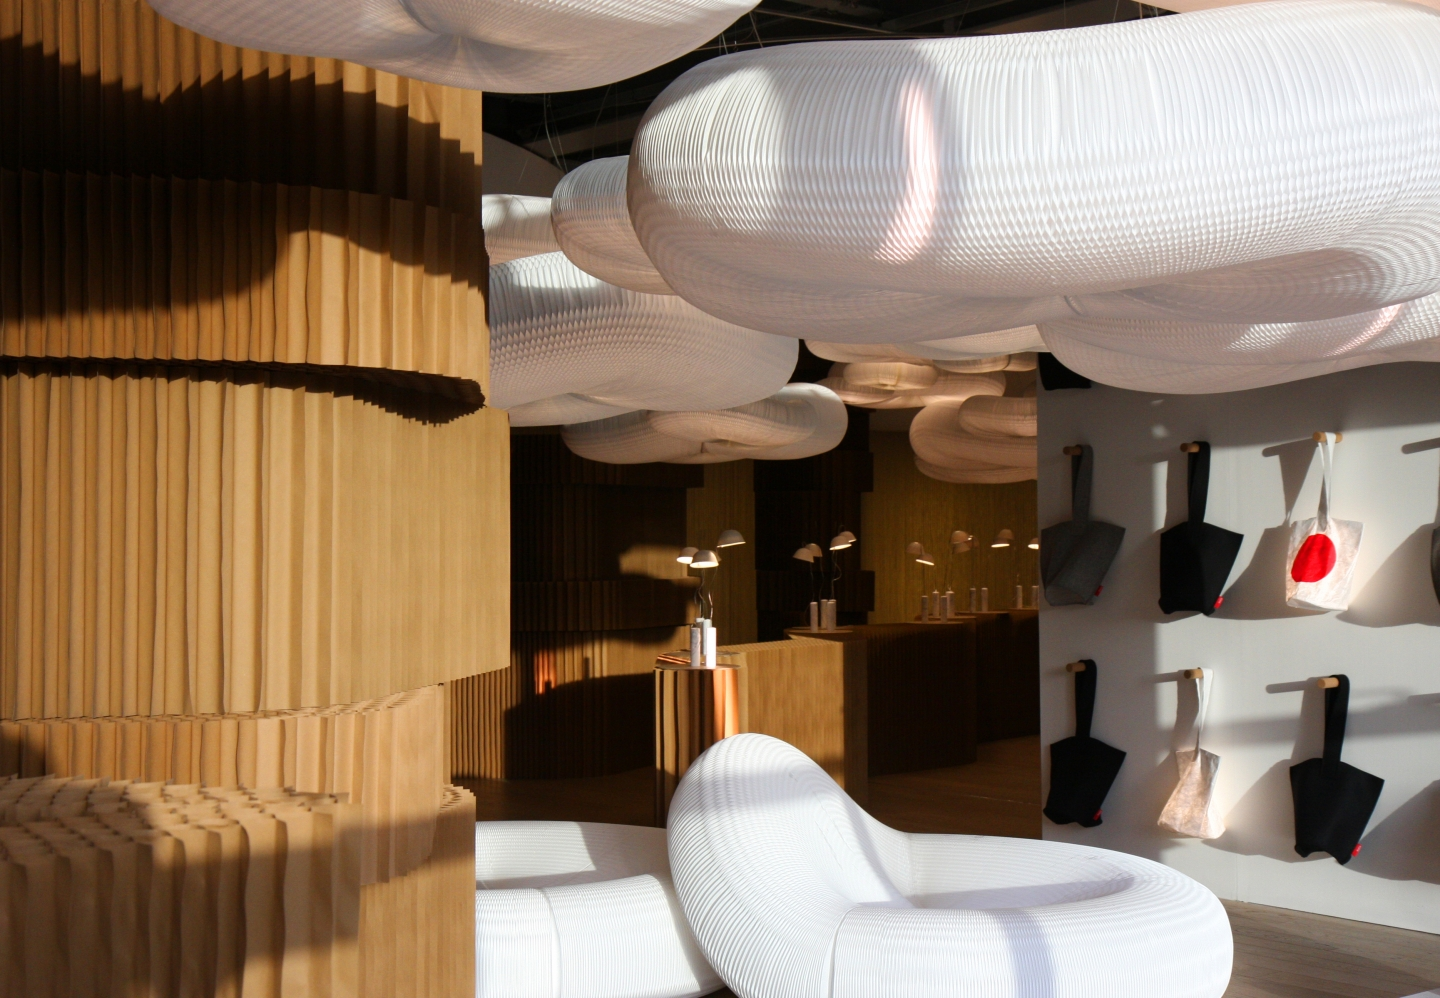 molo's molo's booth at Superstudio Piu showcased textile loungers, cloud softlight pendants and brown paper softblocks. booth at Superstudio Piu showcased textile loungers, cloud softlight pendants and brown paper.